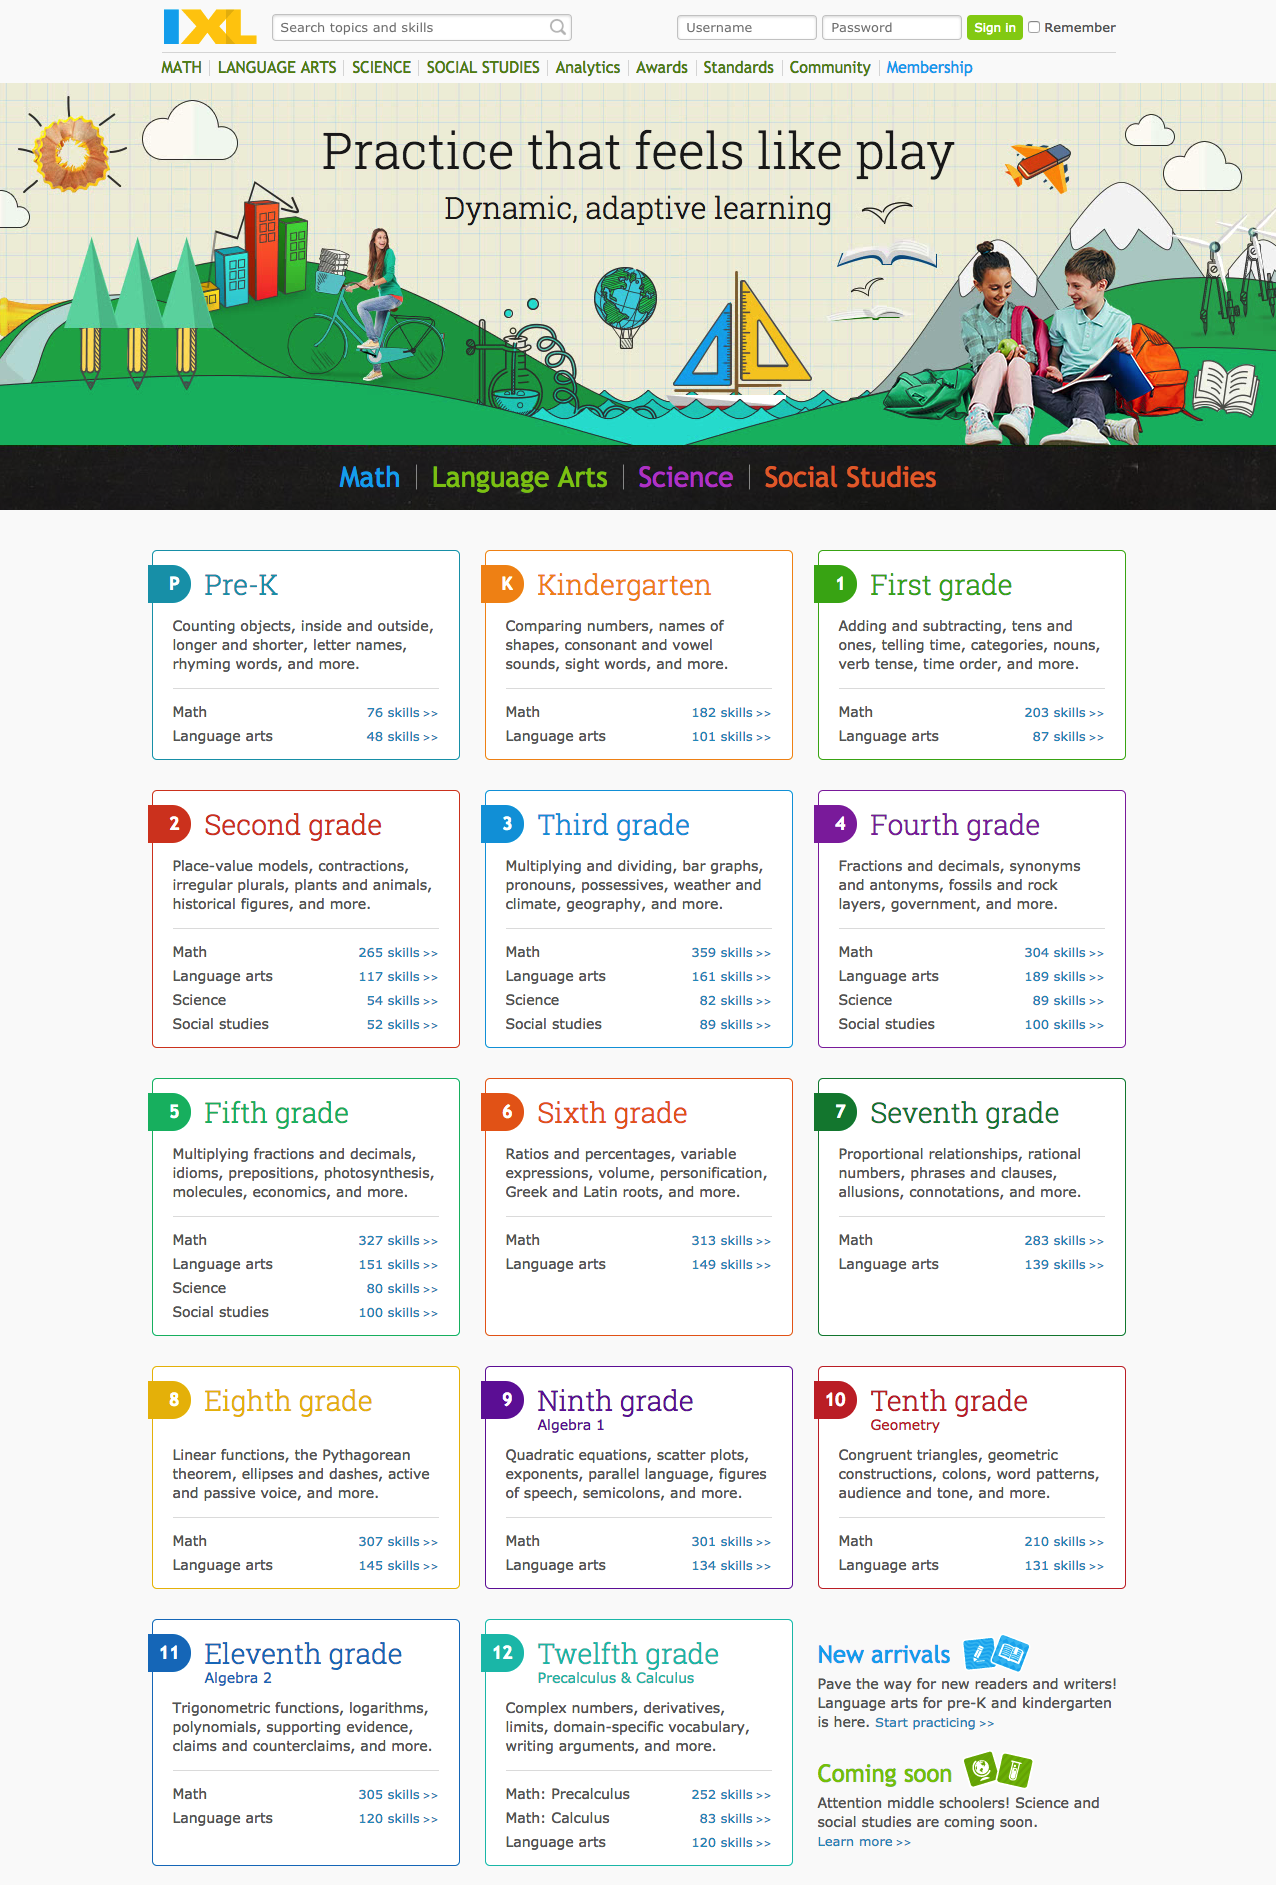 Uncategorized Ixl Worksheets ixl first grade math practice aprita com cute beginners algebra worksheets huge exercises shaped 9th 1 free introduction to